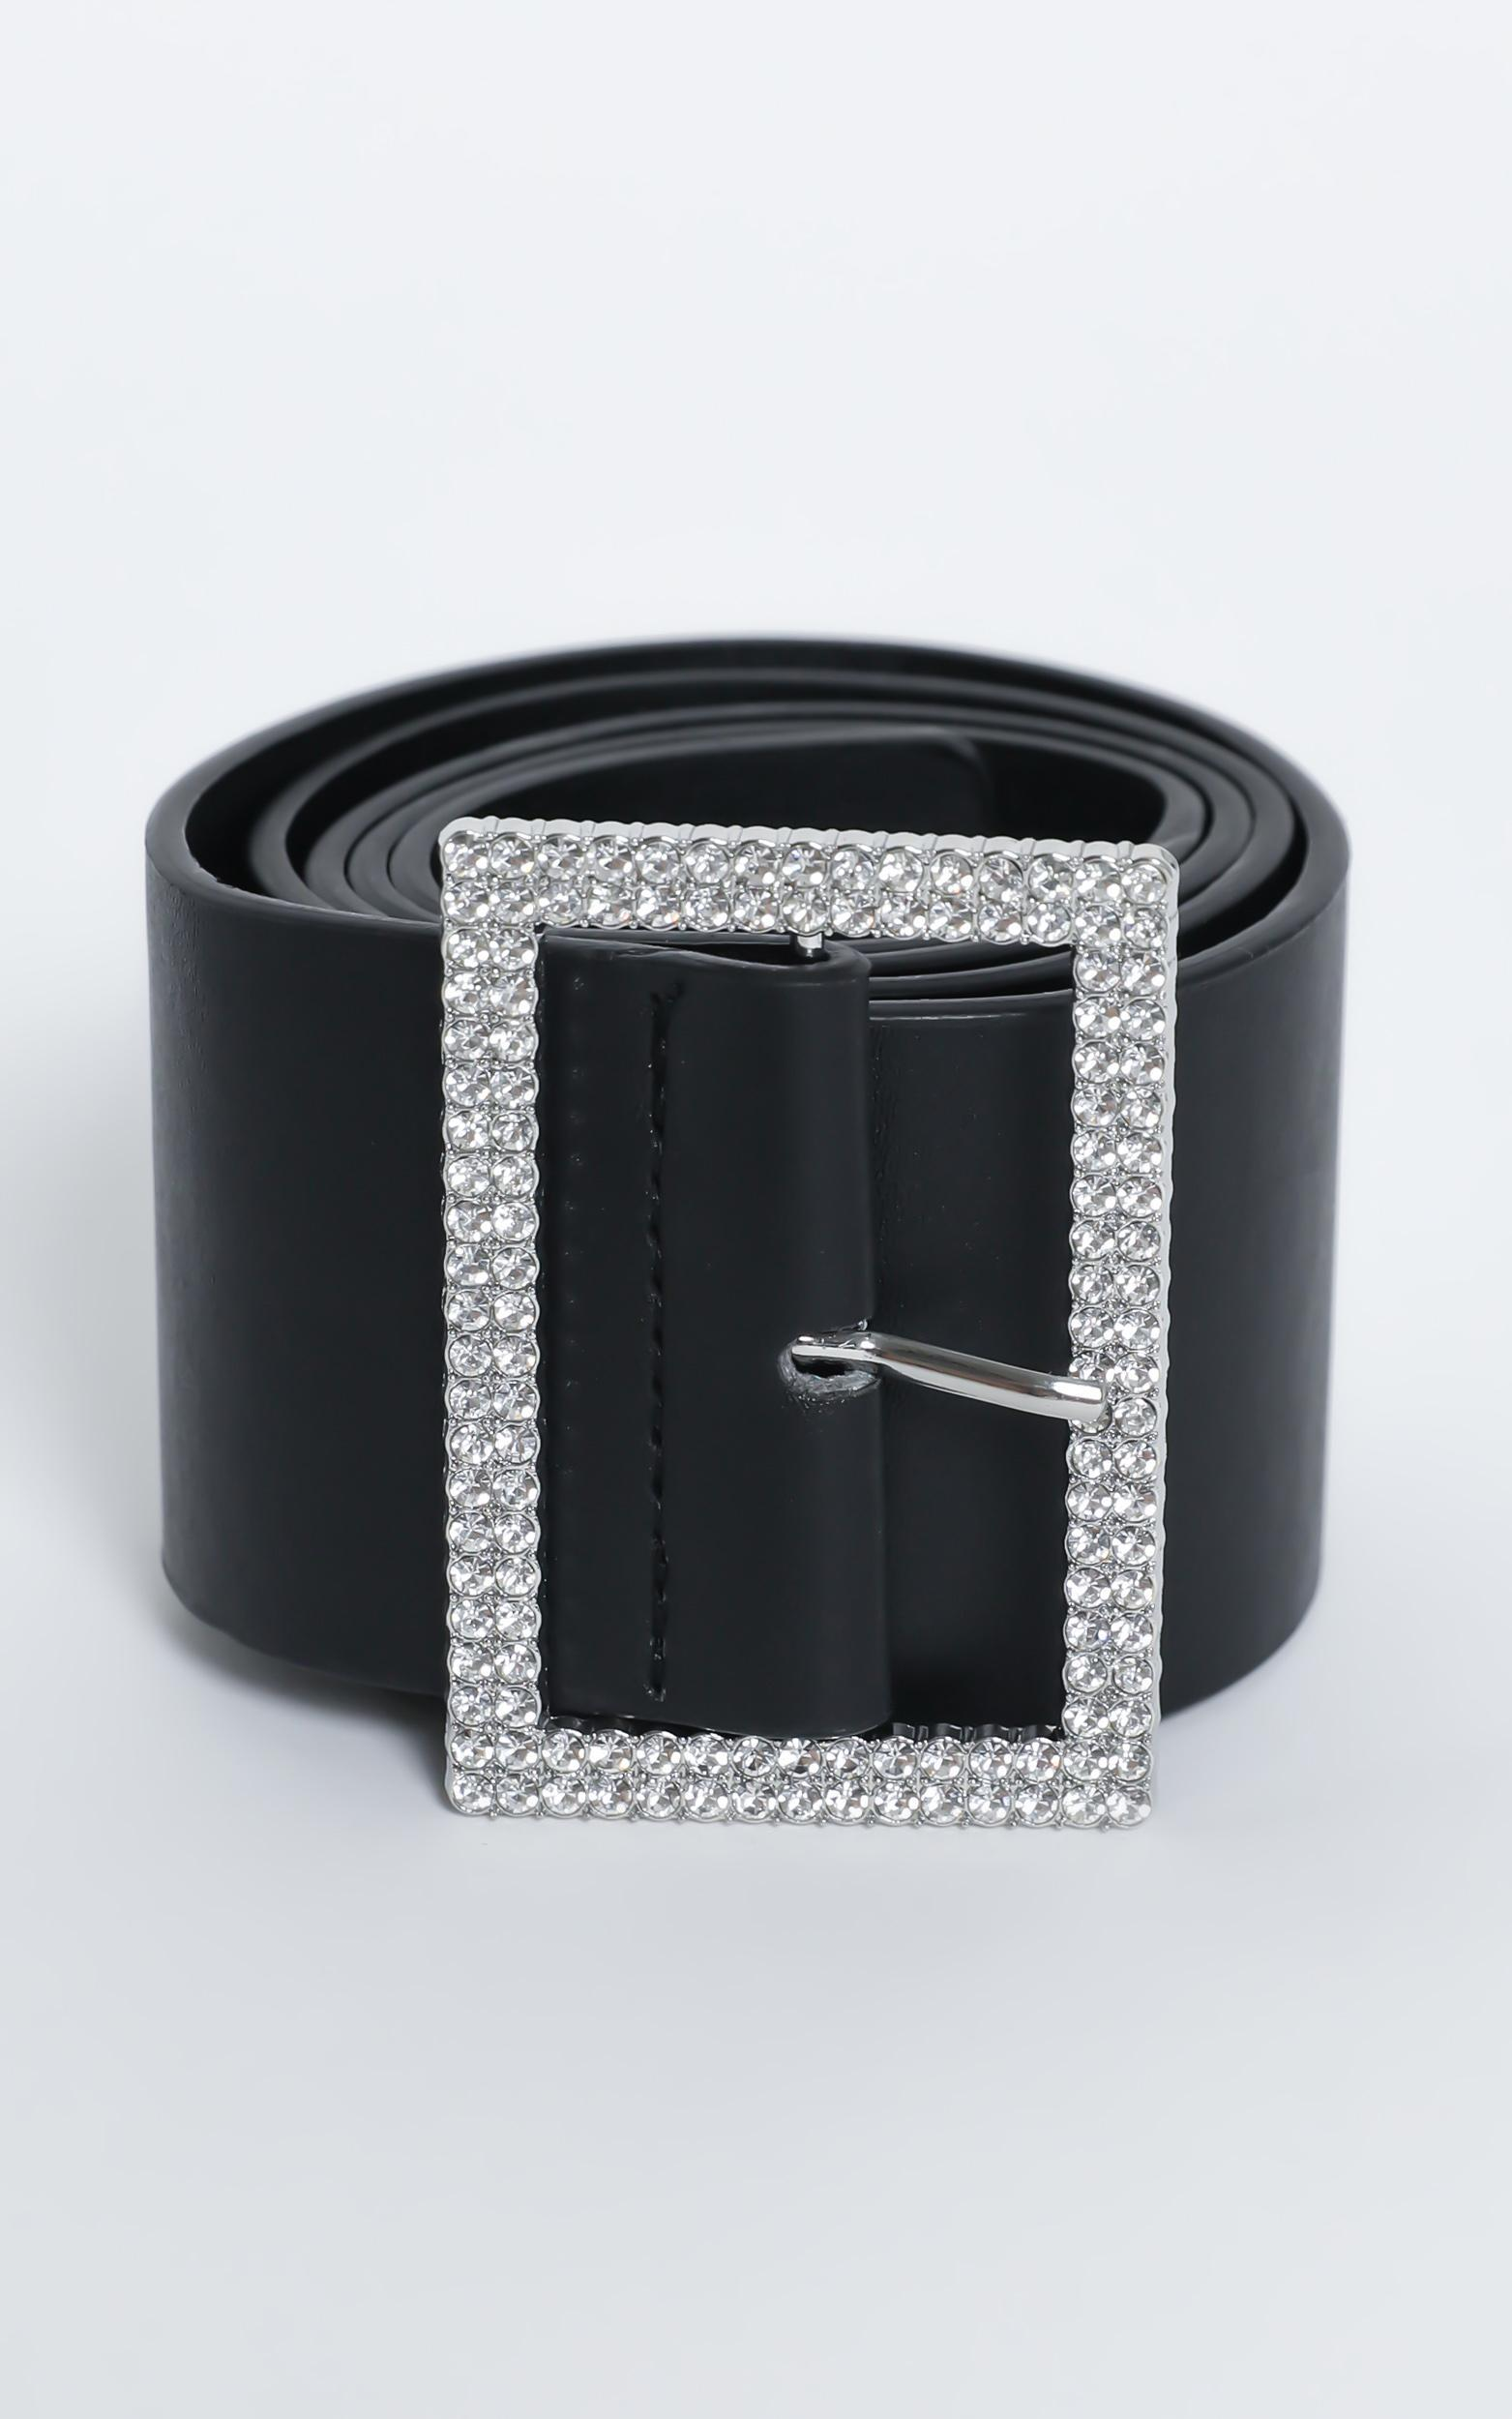 Make It Special Belt in Black and Diamante, , hi-res image number null